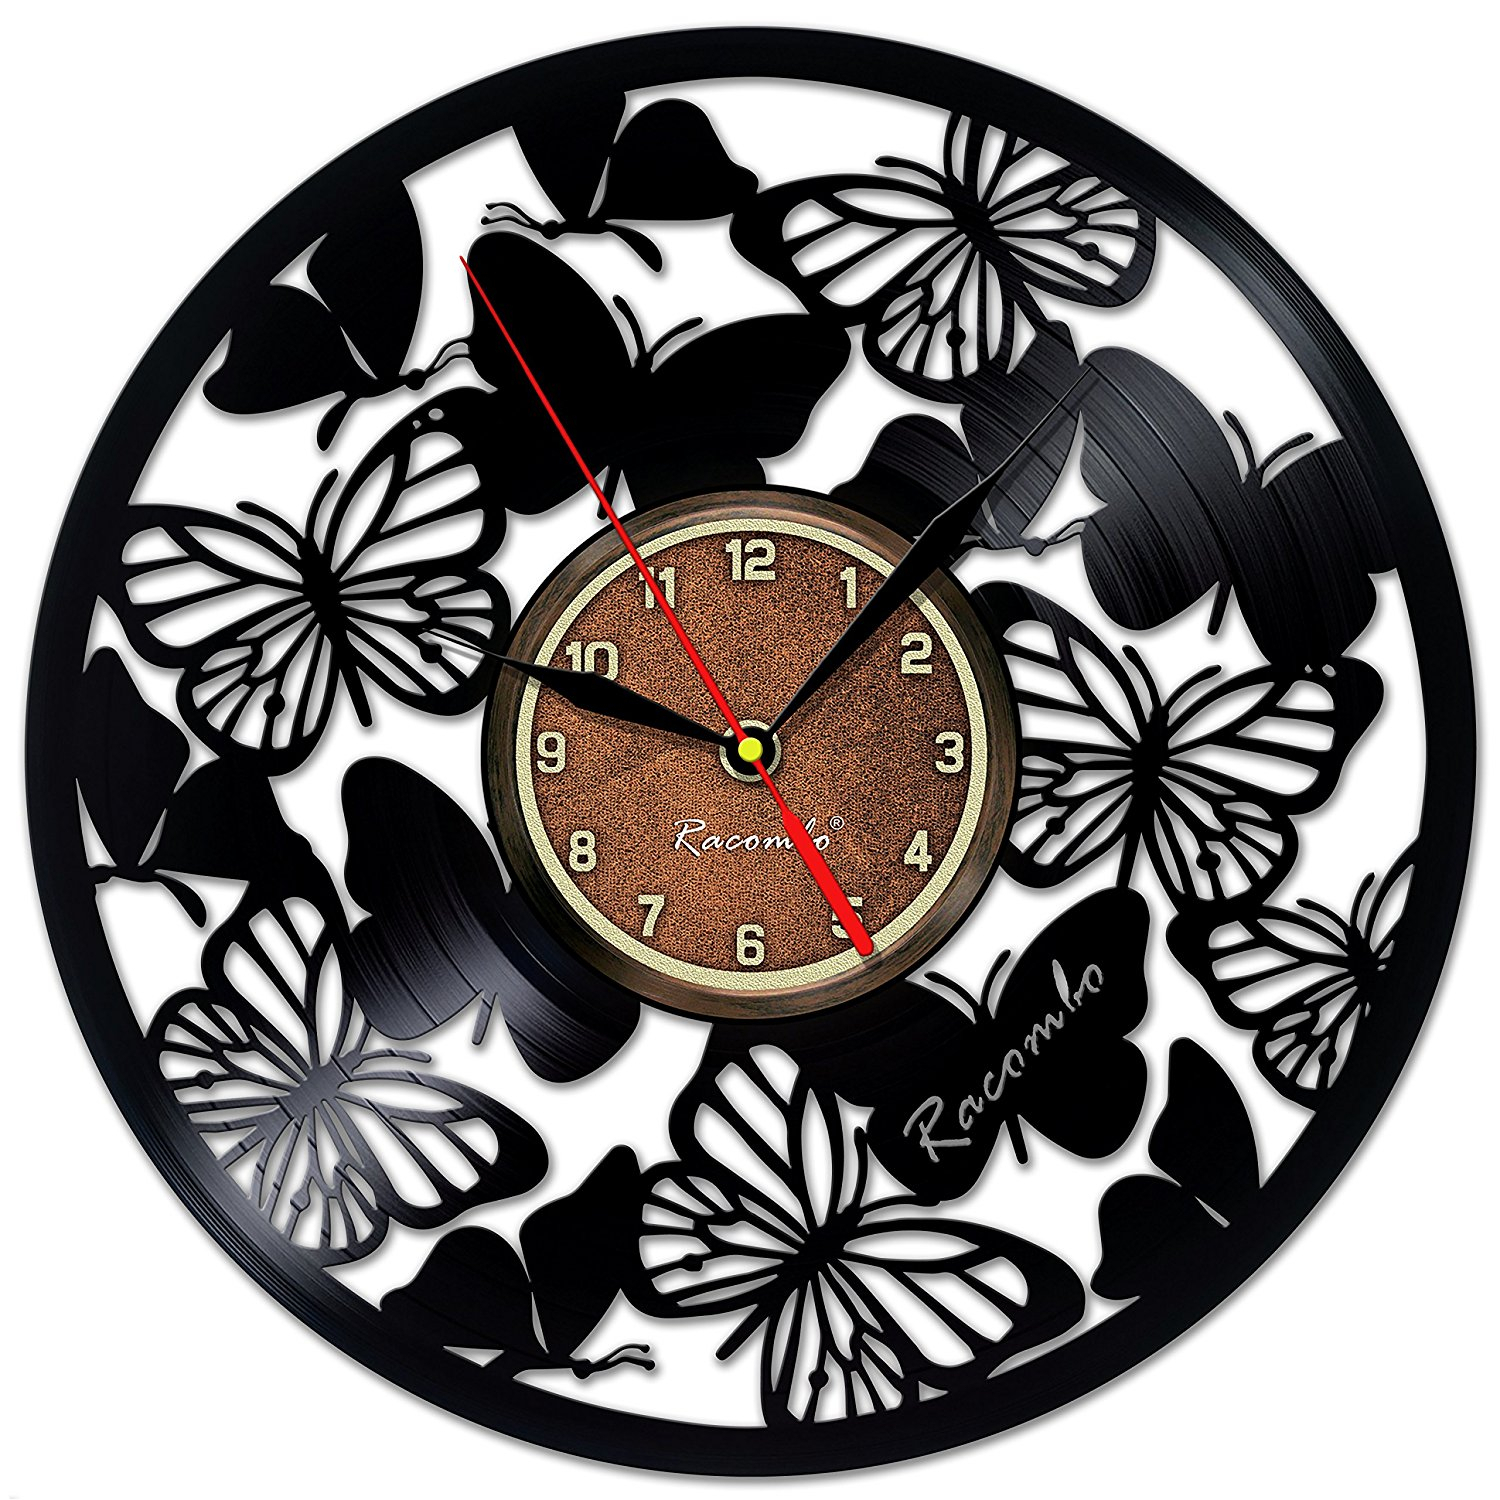 Cheap Butterfly Metal Wall Art, Find Butterfly Metal Wall throughout Flower Urban Design Metal Wall Decor (Image 9 of 30)